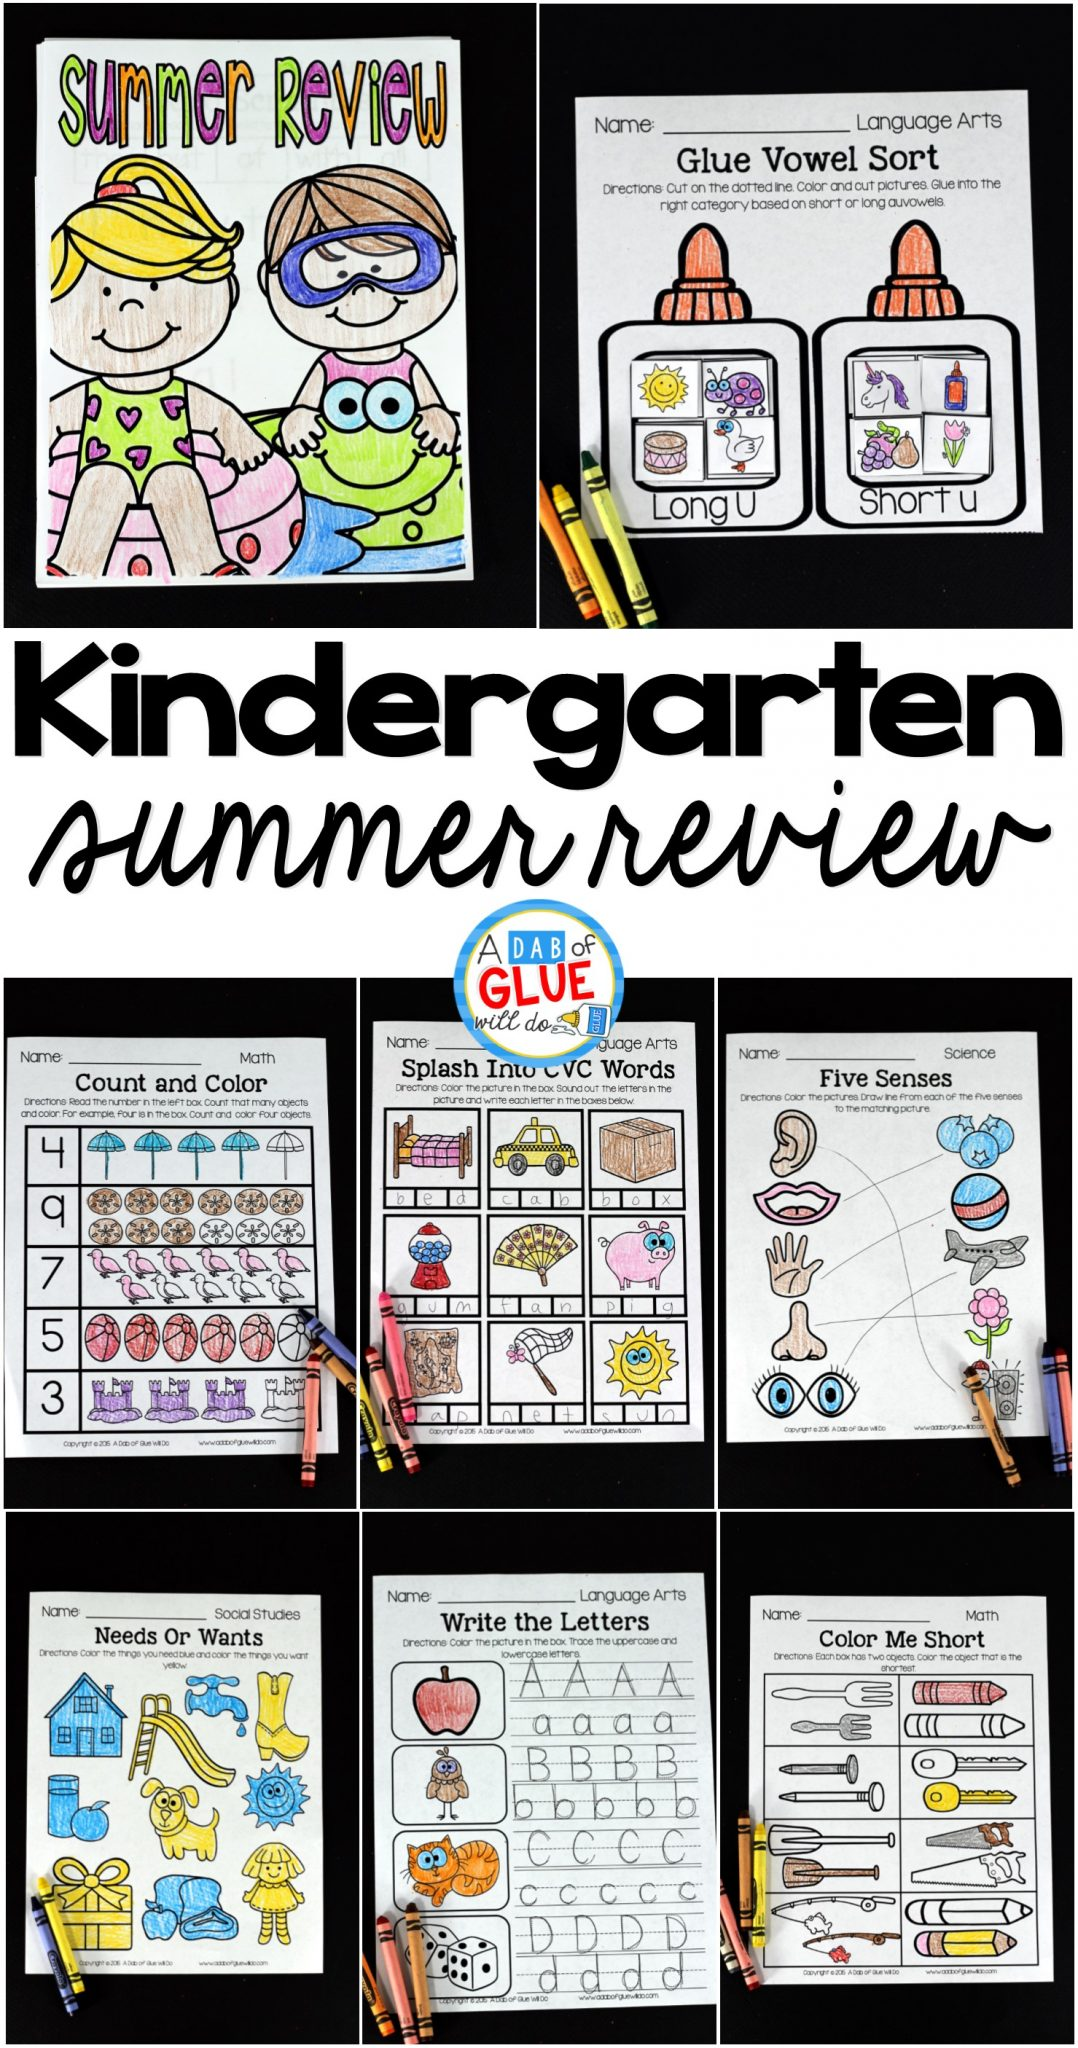 The perfect NO PREP Kindergarten Summer Review packet to help your kindergarten students with hands-on learning over summer break! Give your students going into First Grade fun review printables to help prevent the summer slide and set them up for First Grade success. This review is packed full of engaging homework review activities that will bring a smile to their sweet faces as they work on math, language arts, social studies, and science! Parents will enjoy the student's focus on summer homework and First Grade teachers will LOVE their new students ready for First Grade work.